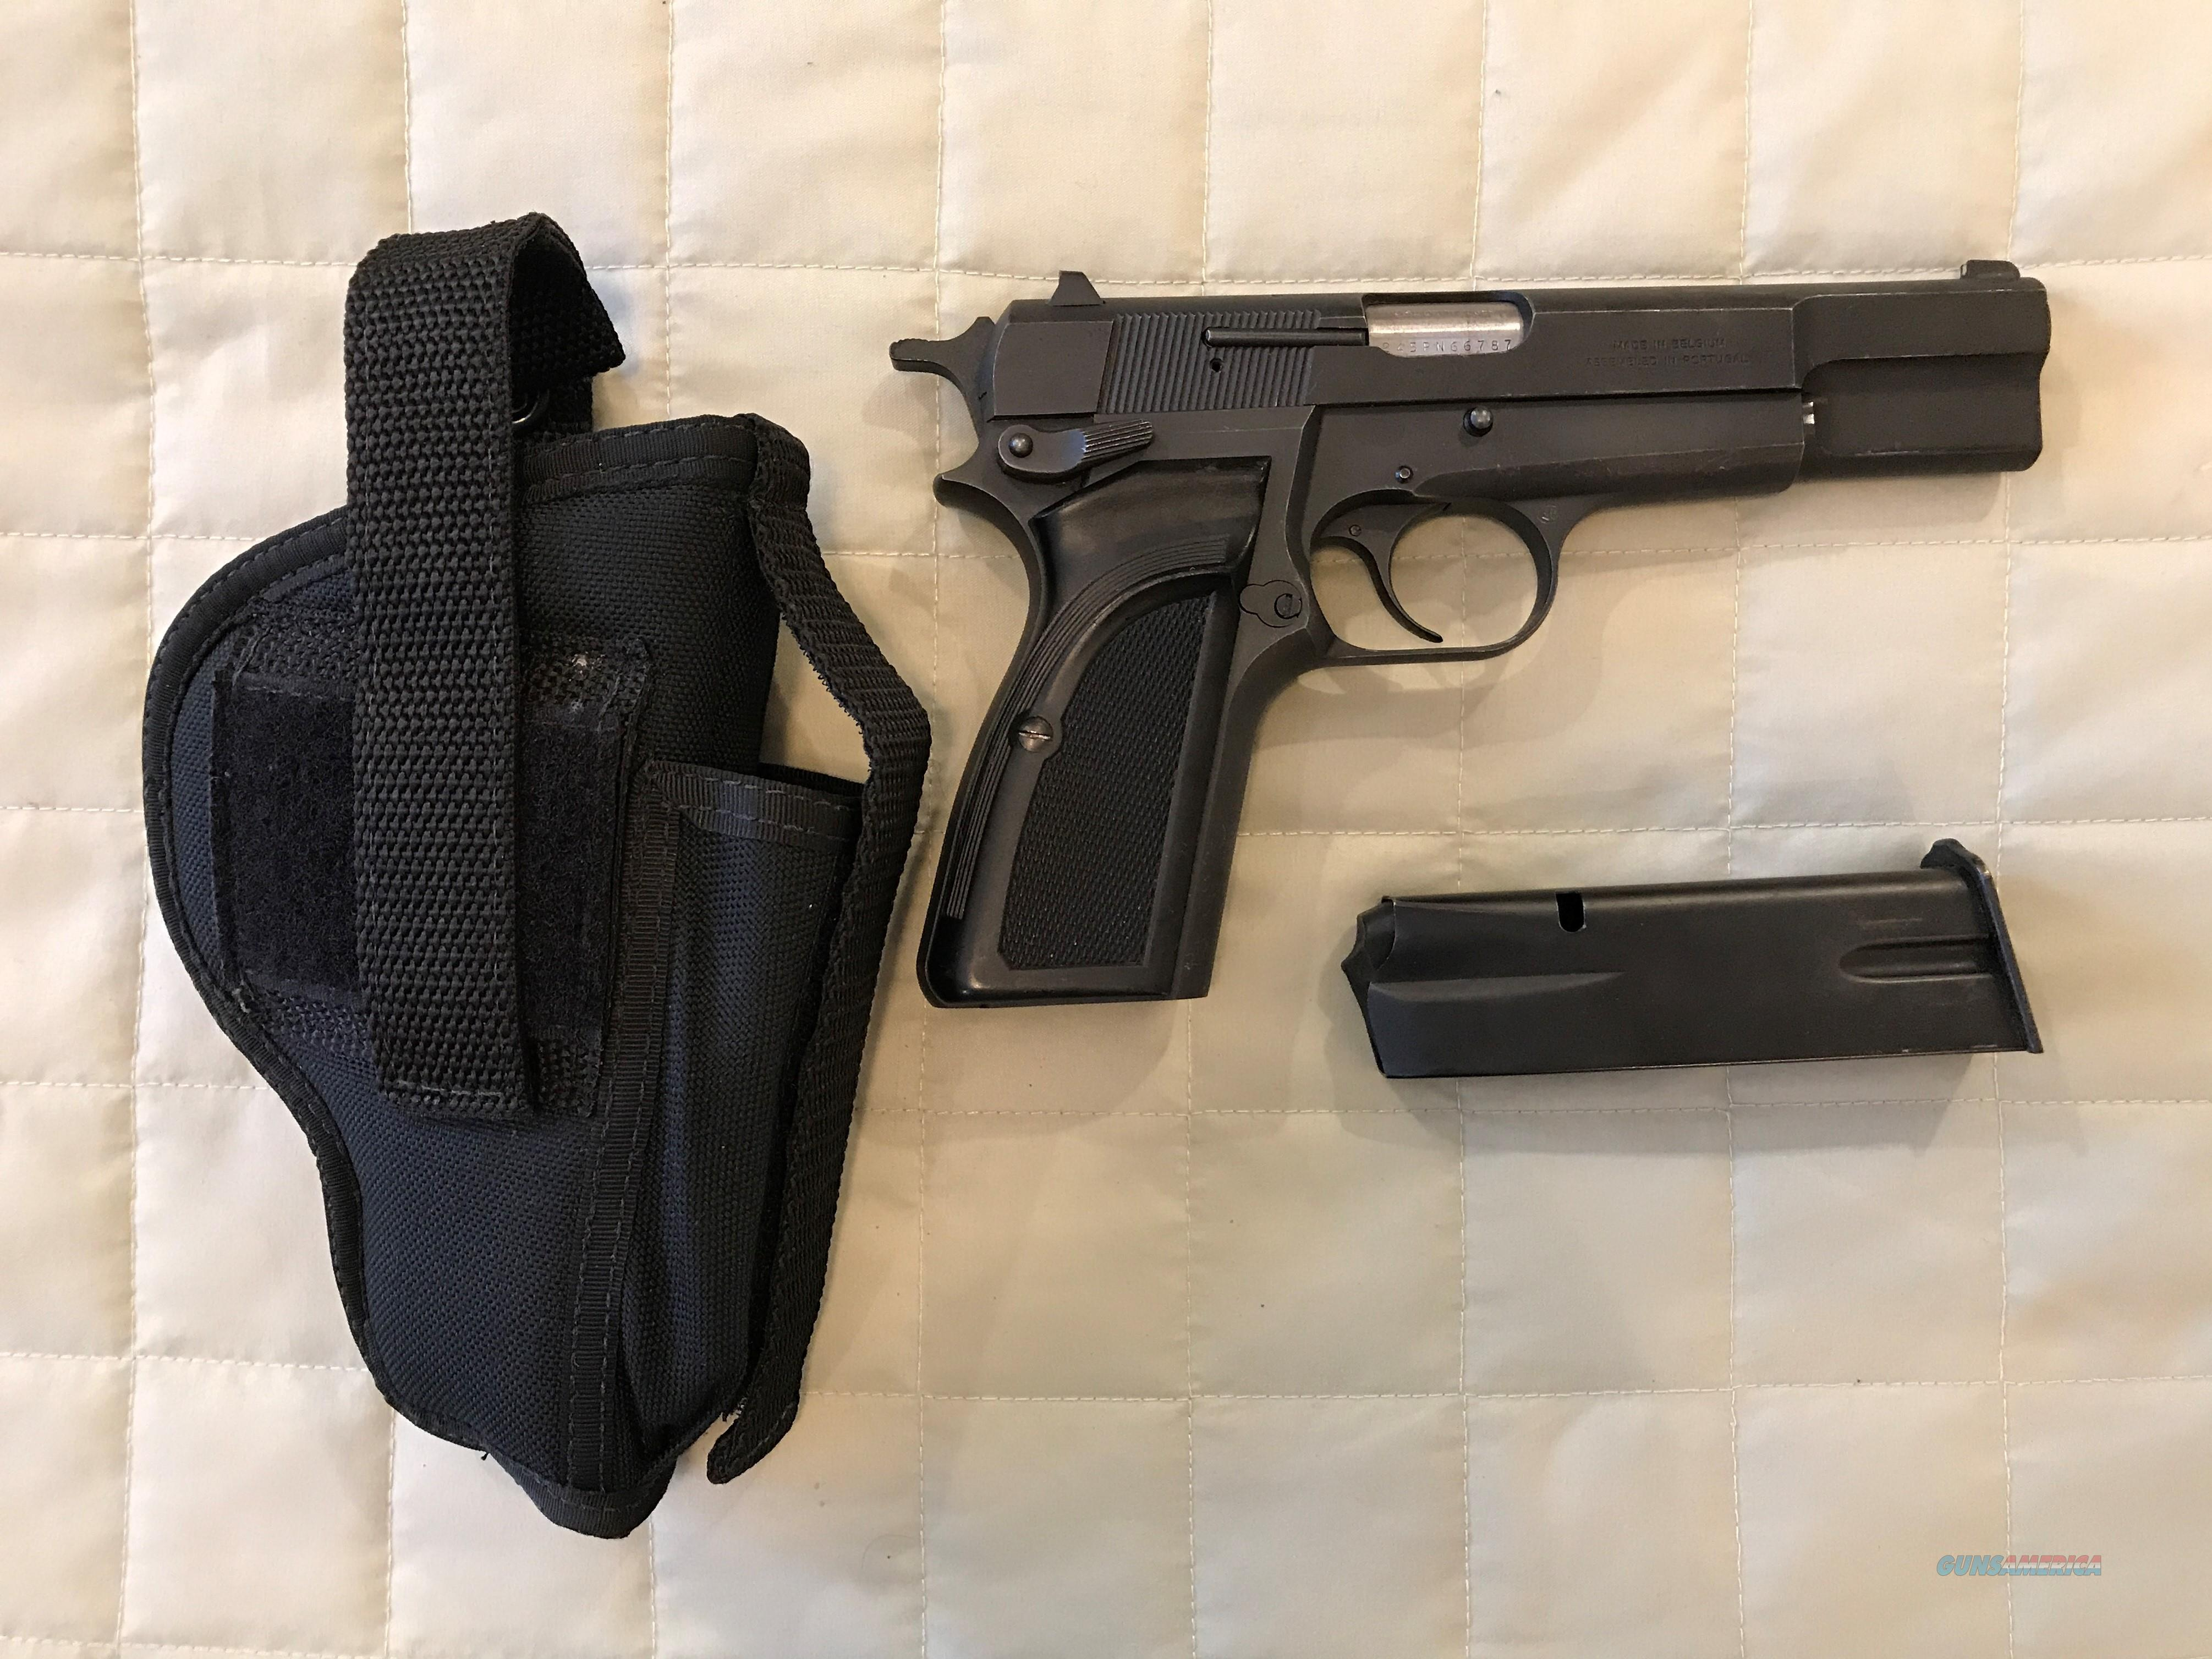 BROWNING HI POWER 9MM MARK III 1989, ADJ LOW PROFILE FRT & REAR SIGHTS, 13 RD MAG, HOLSTER  Guns > Pistols > Browning Pistols > Hi Power